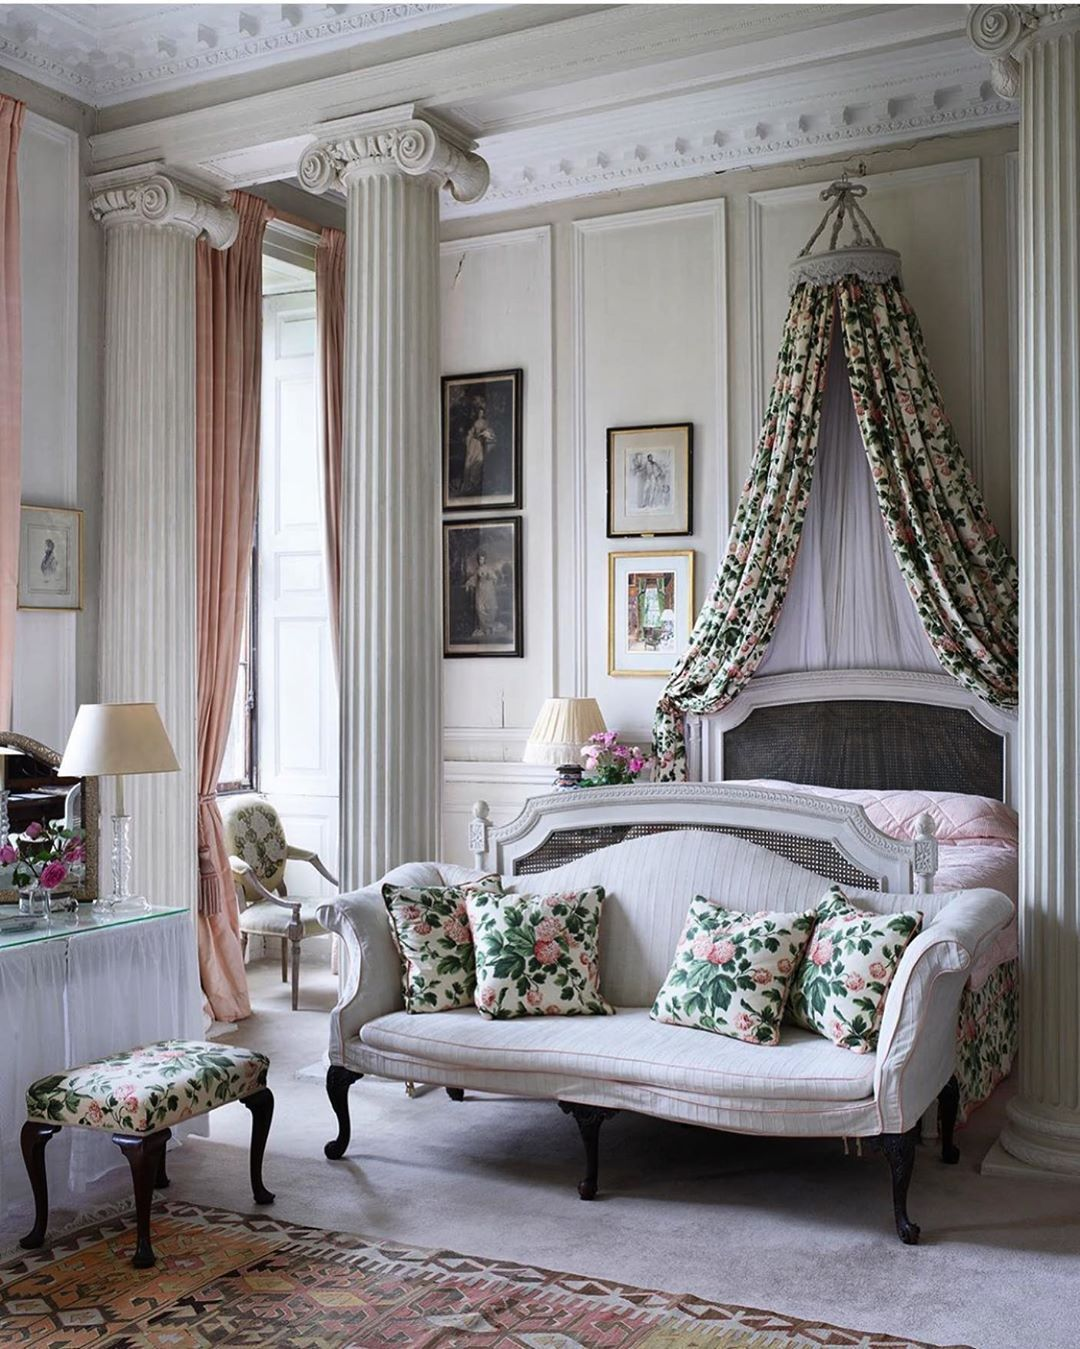 Secrets Of A Hostess On Instagram The Fuchsia Room At The